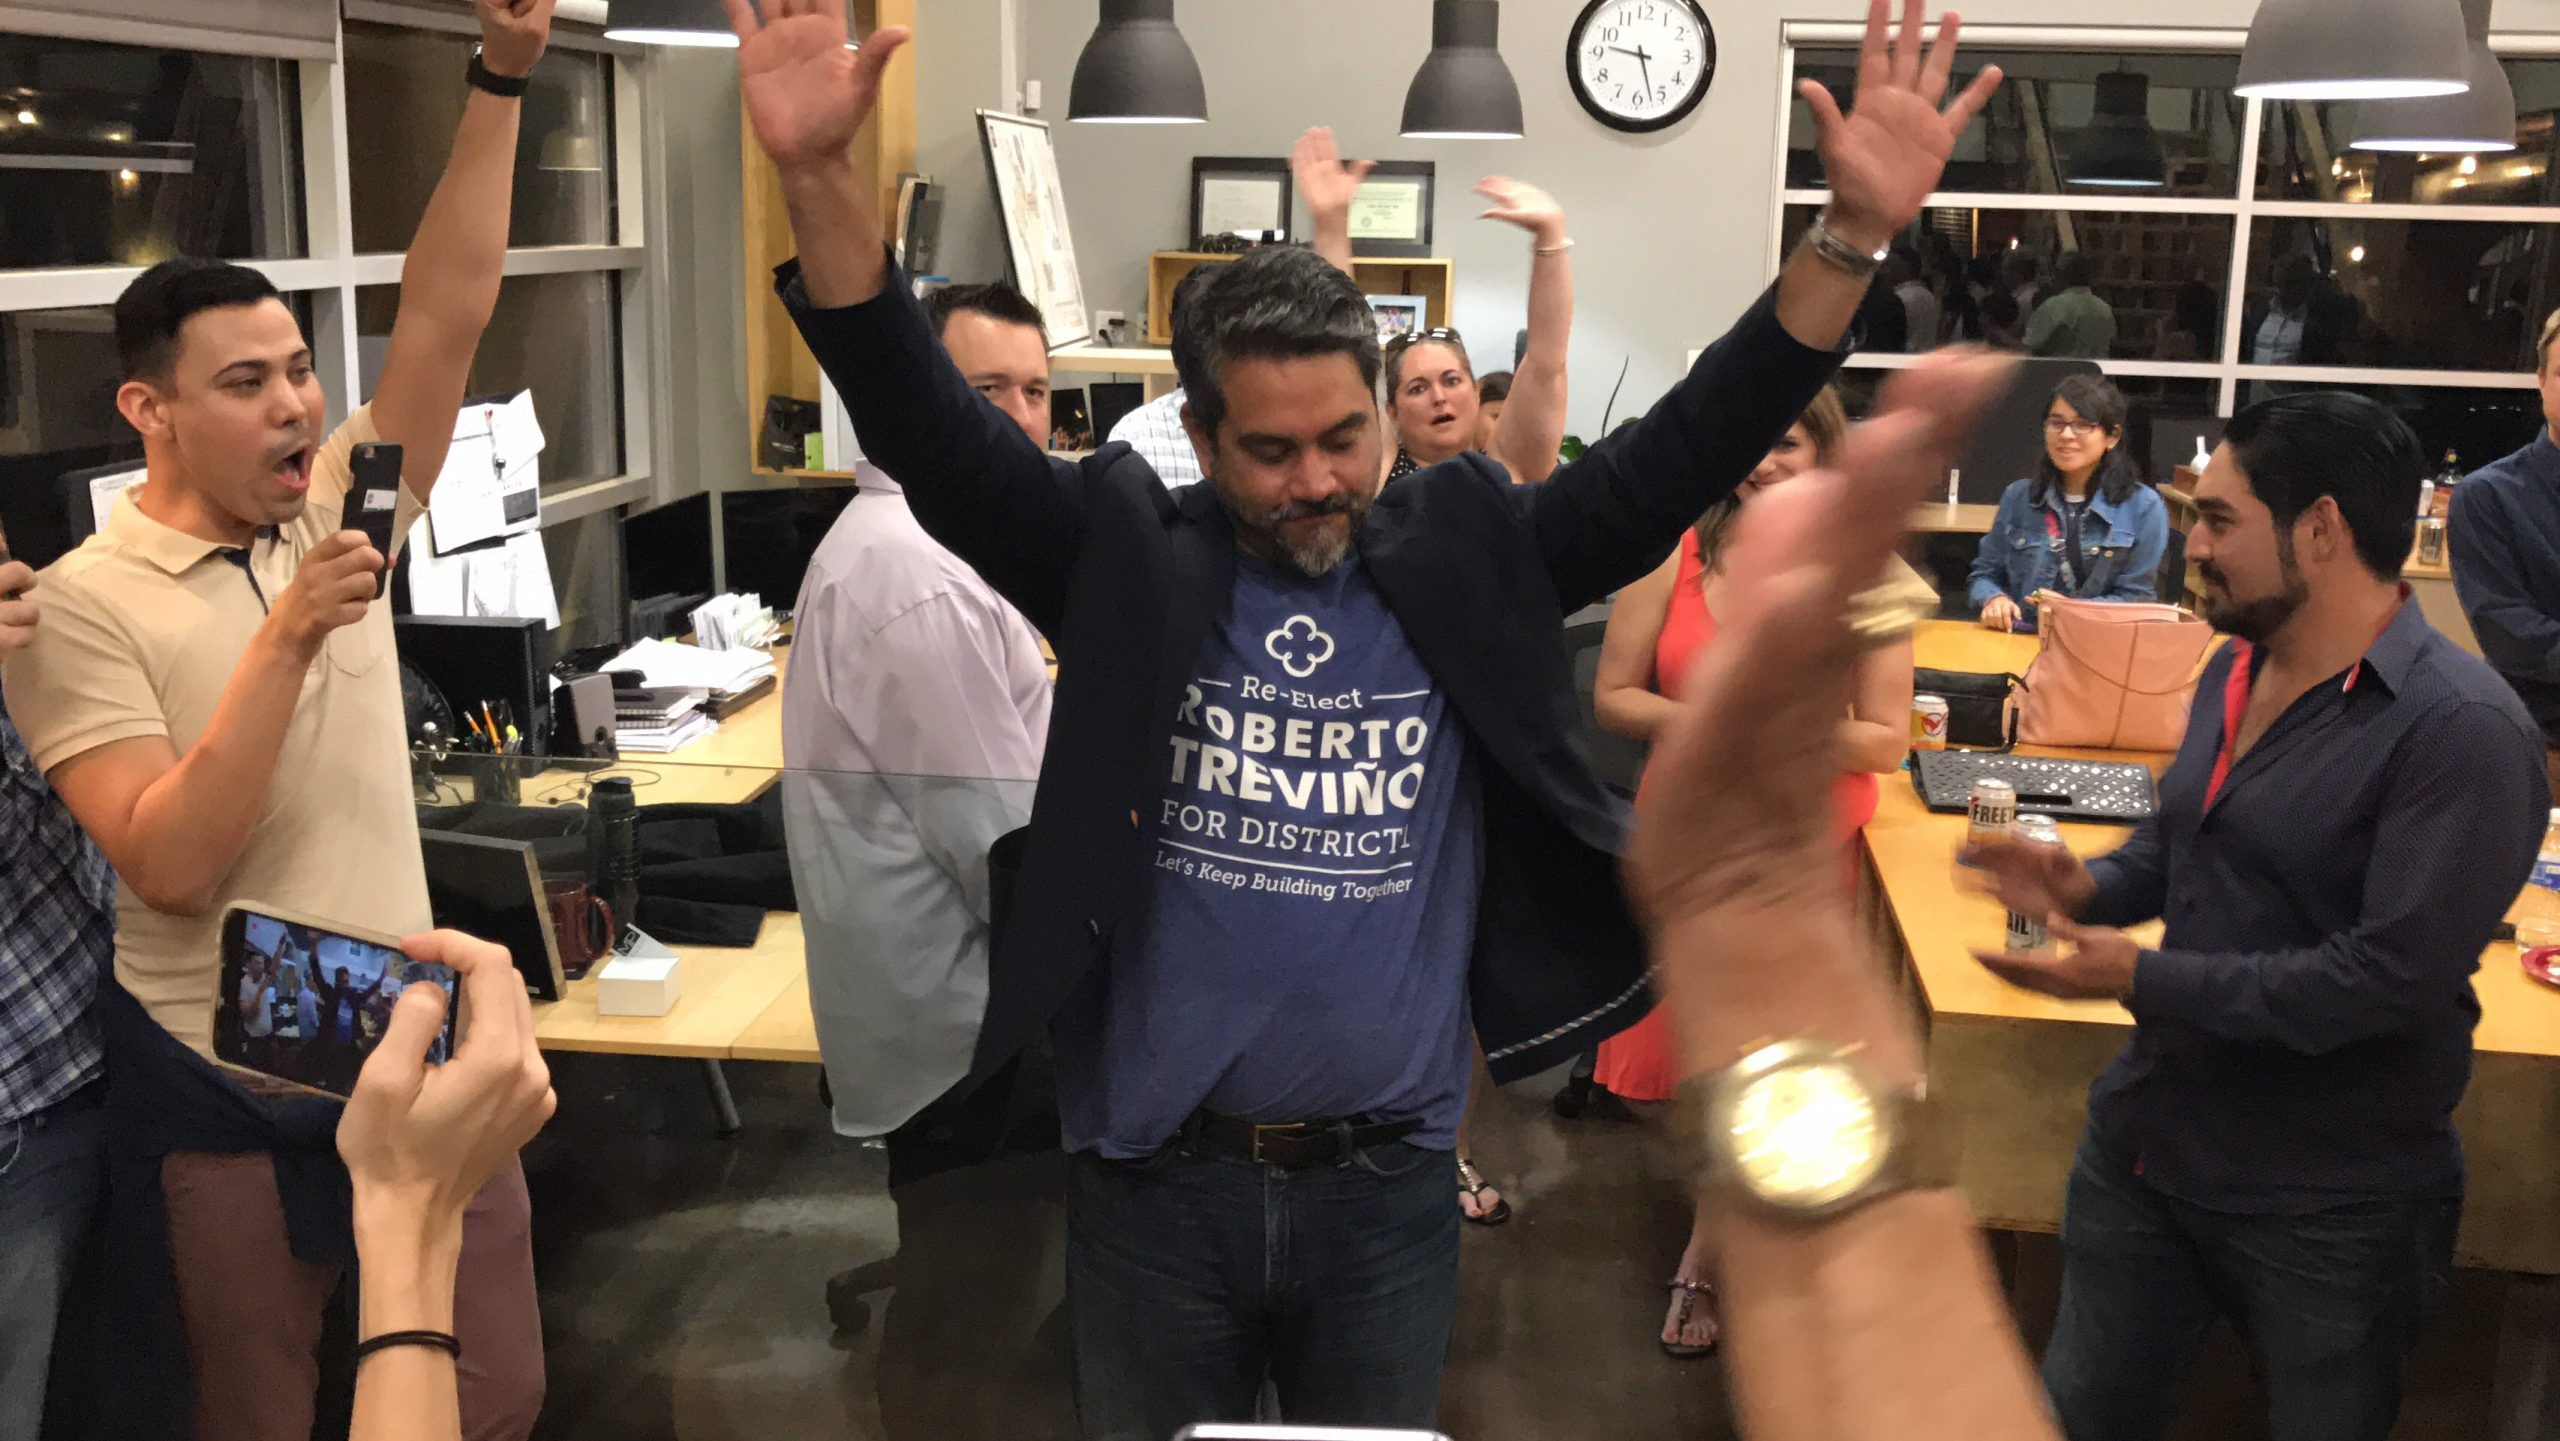 Councilman Roberto Treviño celebrates his re-election in District 1 after the June 10 runoff results are announced.